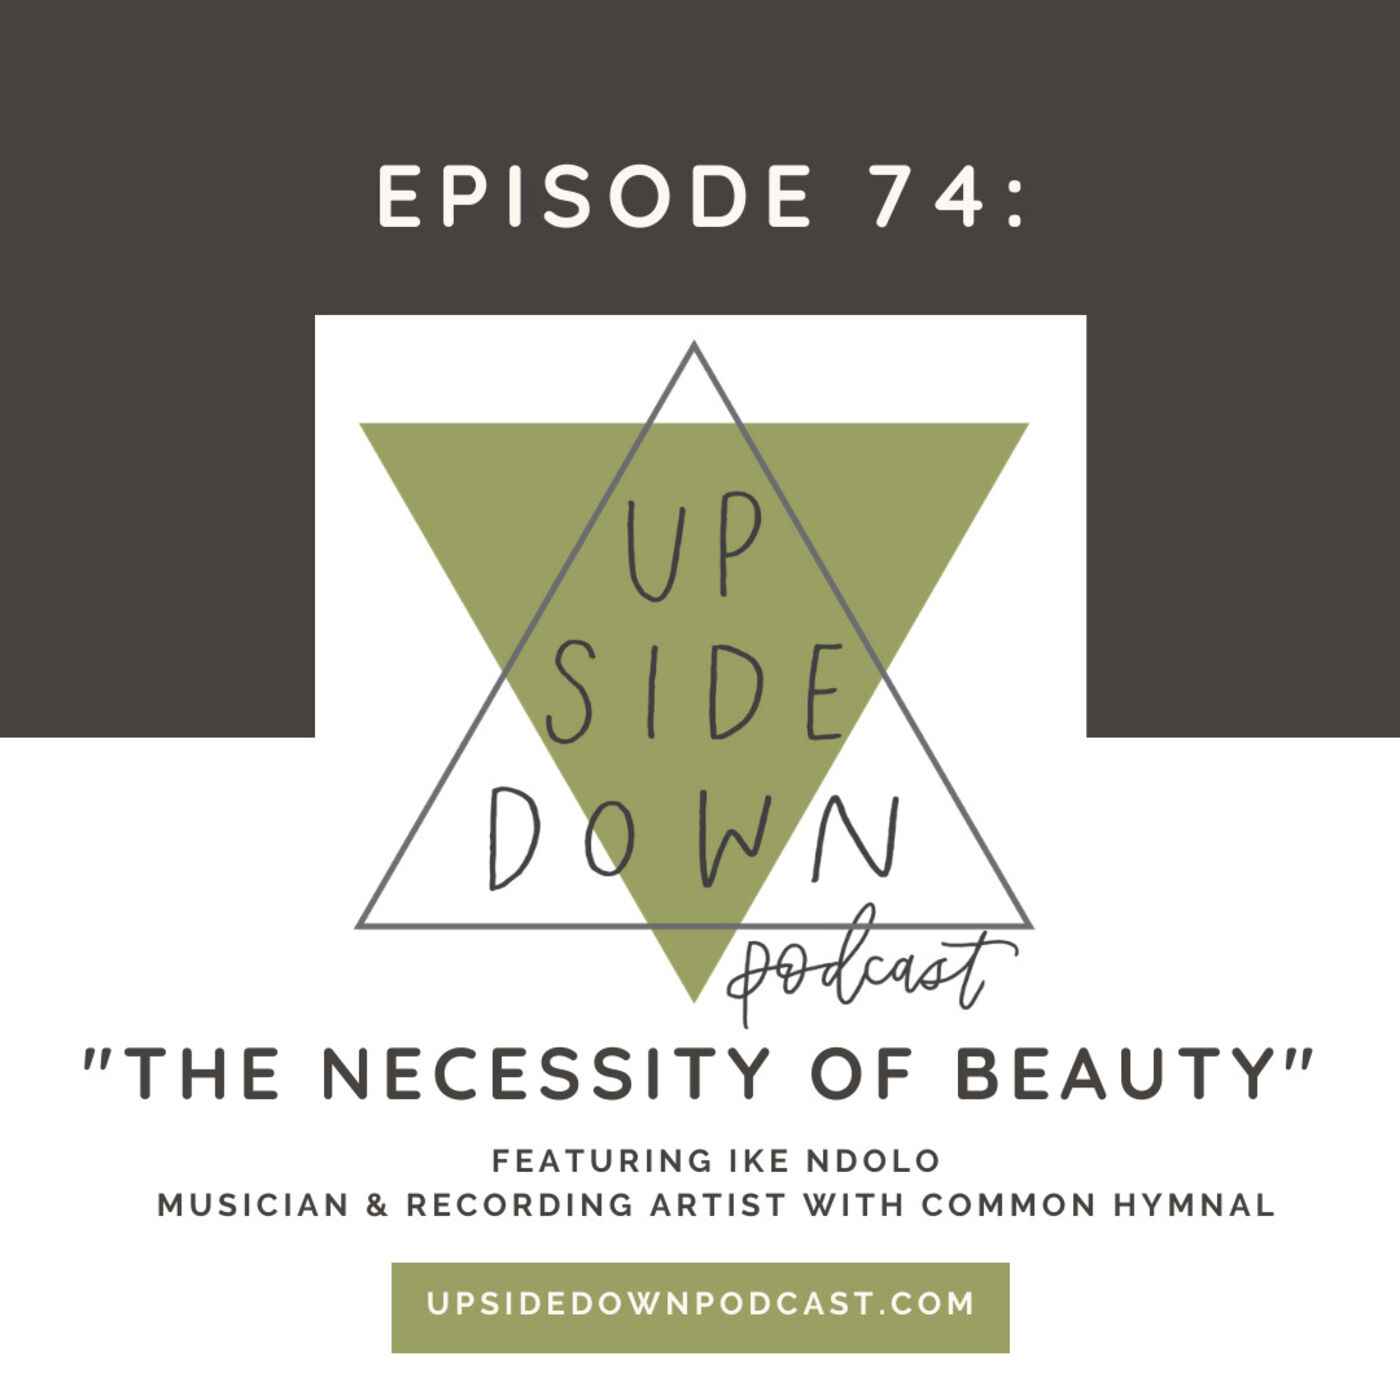 Season 5 | Episode 74: The Necessity of Beauty with Ike Ndolo, Musician & Recording Artist with Common Hymnal